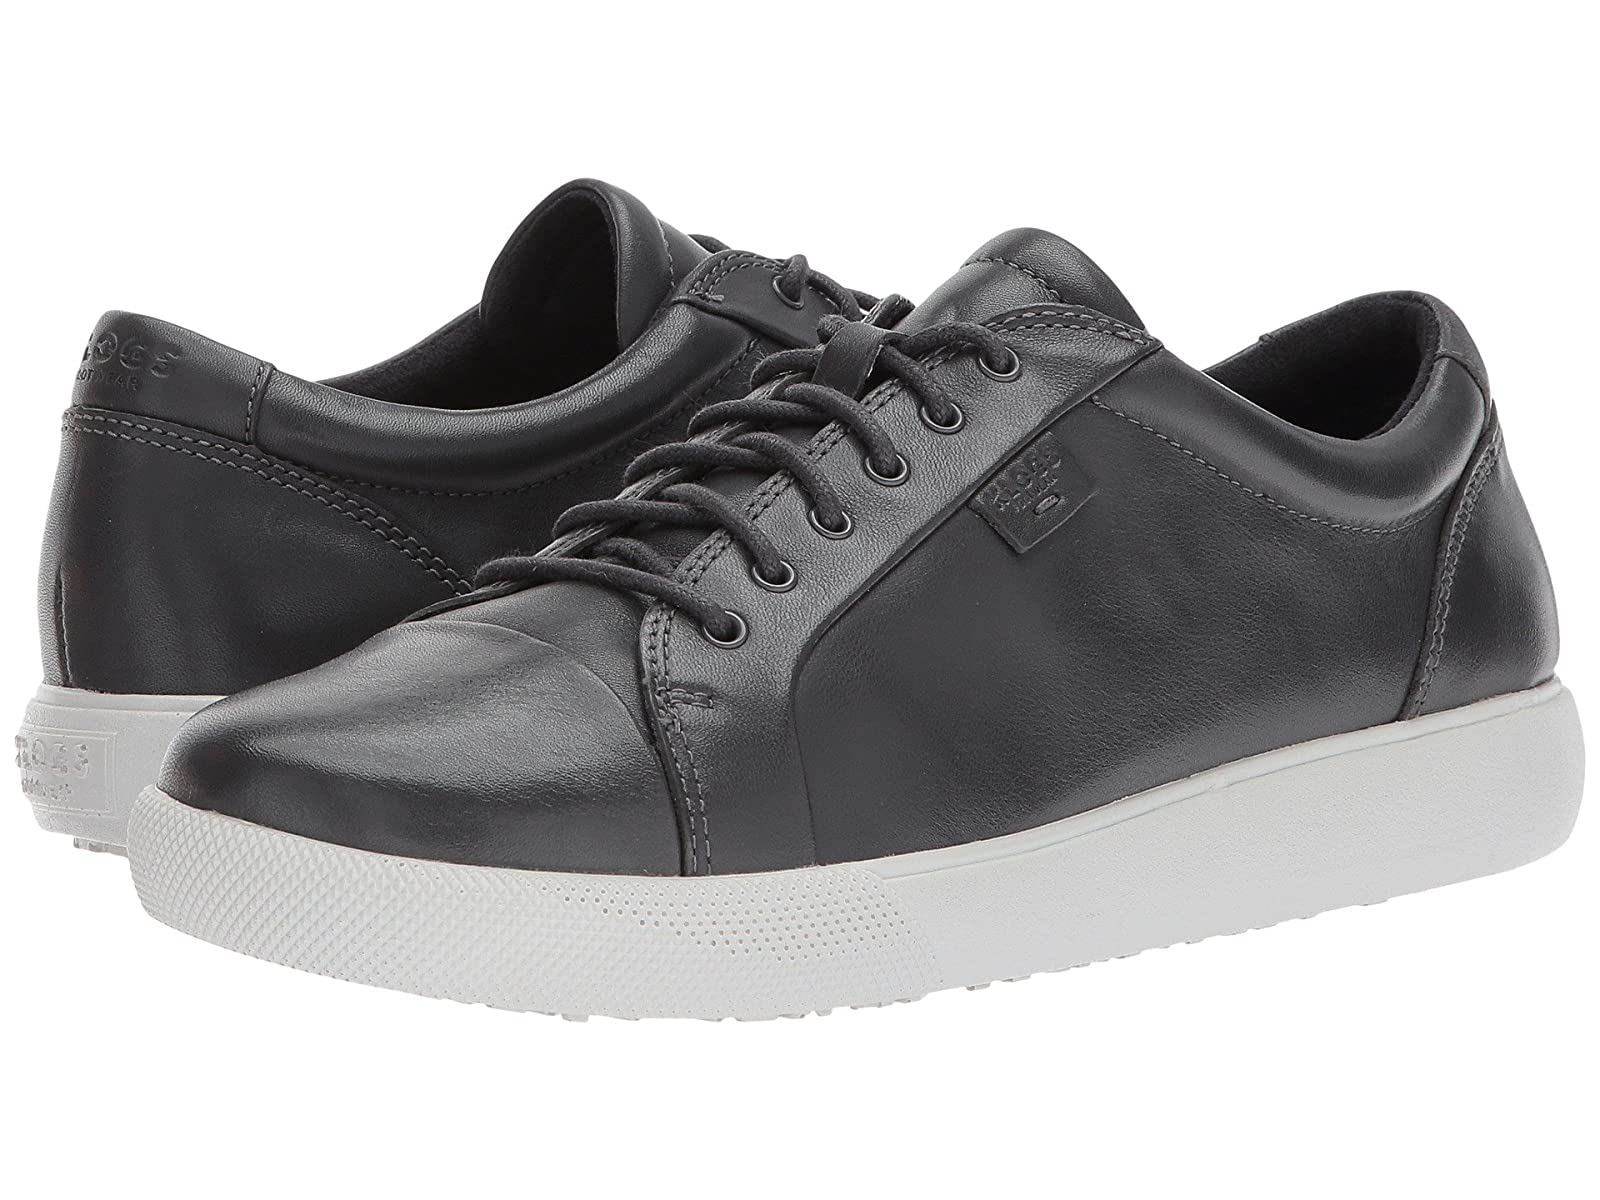 Klogs Footwear MoroCheap and distinctive eye-catching shoes